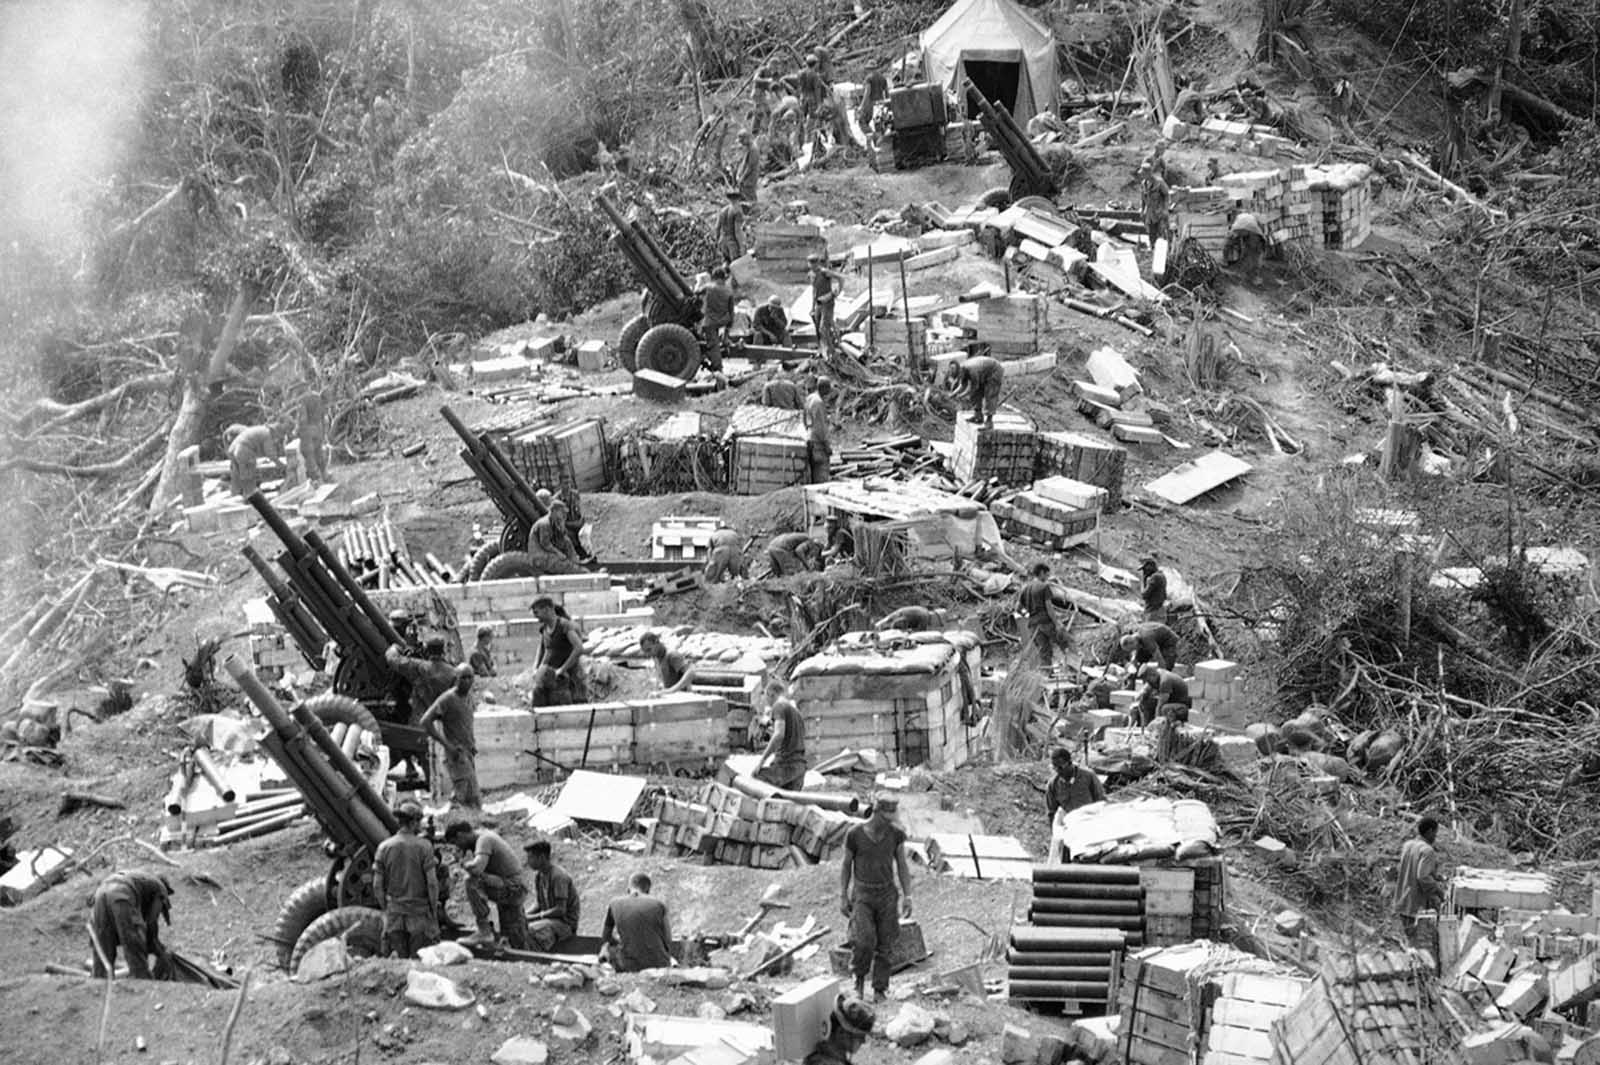 Marines prepare their 105-mm Howitzers for action at the end of a day in which this dense jungle area west of Hue was chopped down and molded into a fire-support base for a sweep of the area on February 18, 1969. Troops used explosives and earth-moving equipment to carve out the gun pits and bunkers which by nightfall became a fire-support base.